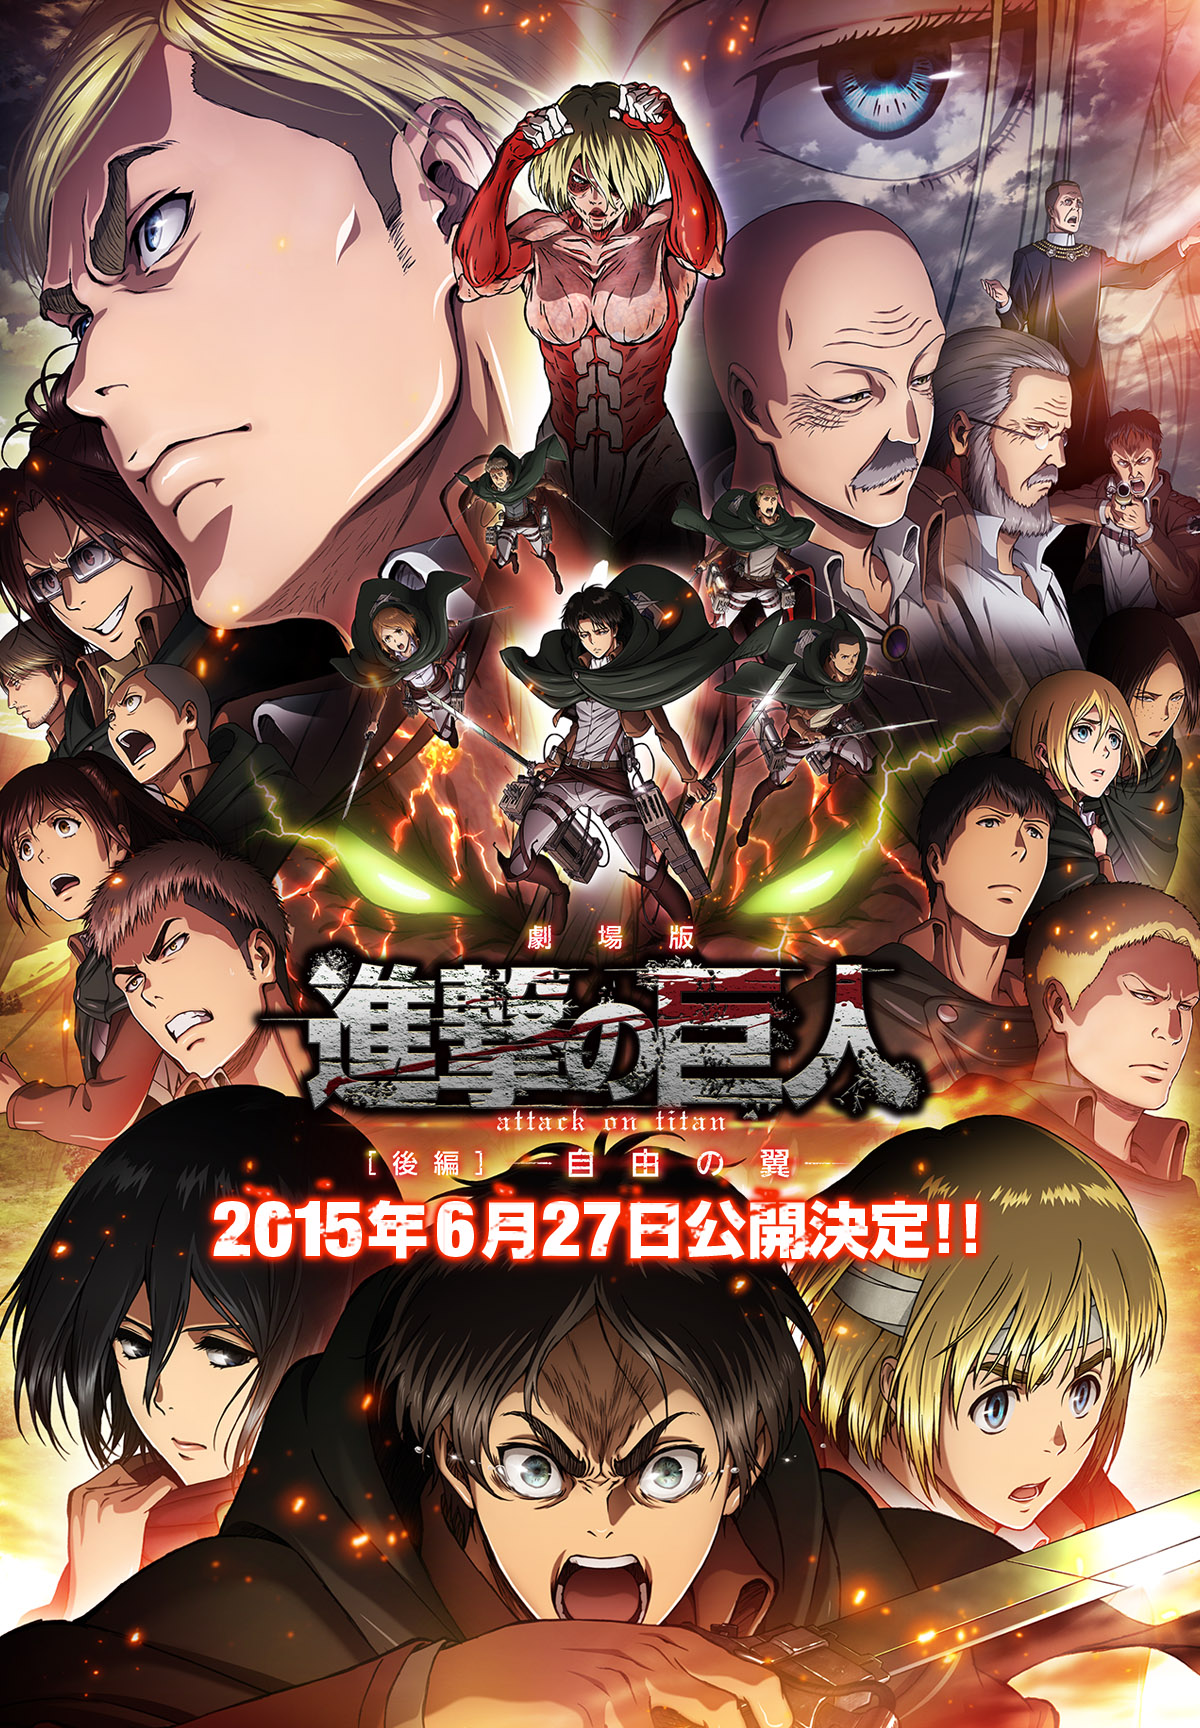 New Key Visual for the 2nd Attack on Titan Movie haruhichan.com 2nd shingeki no kyojin movie visual